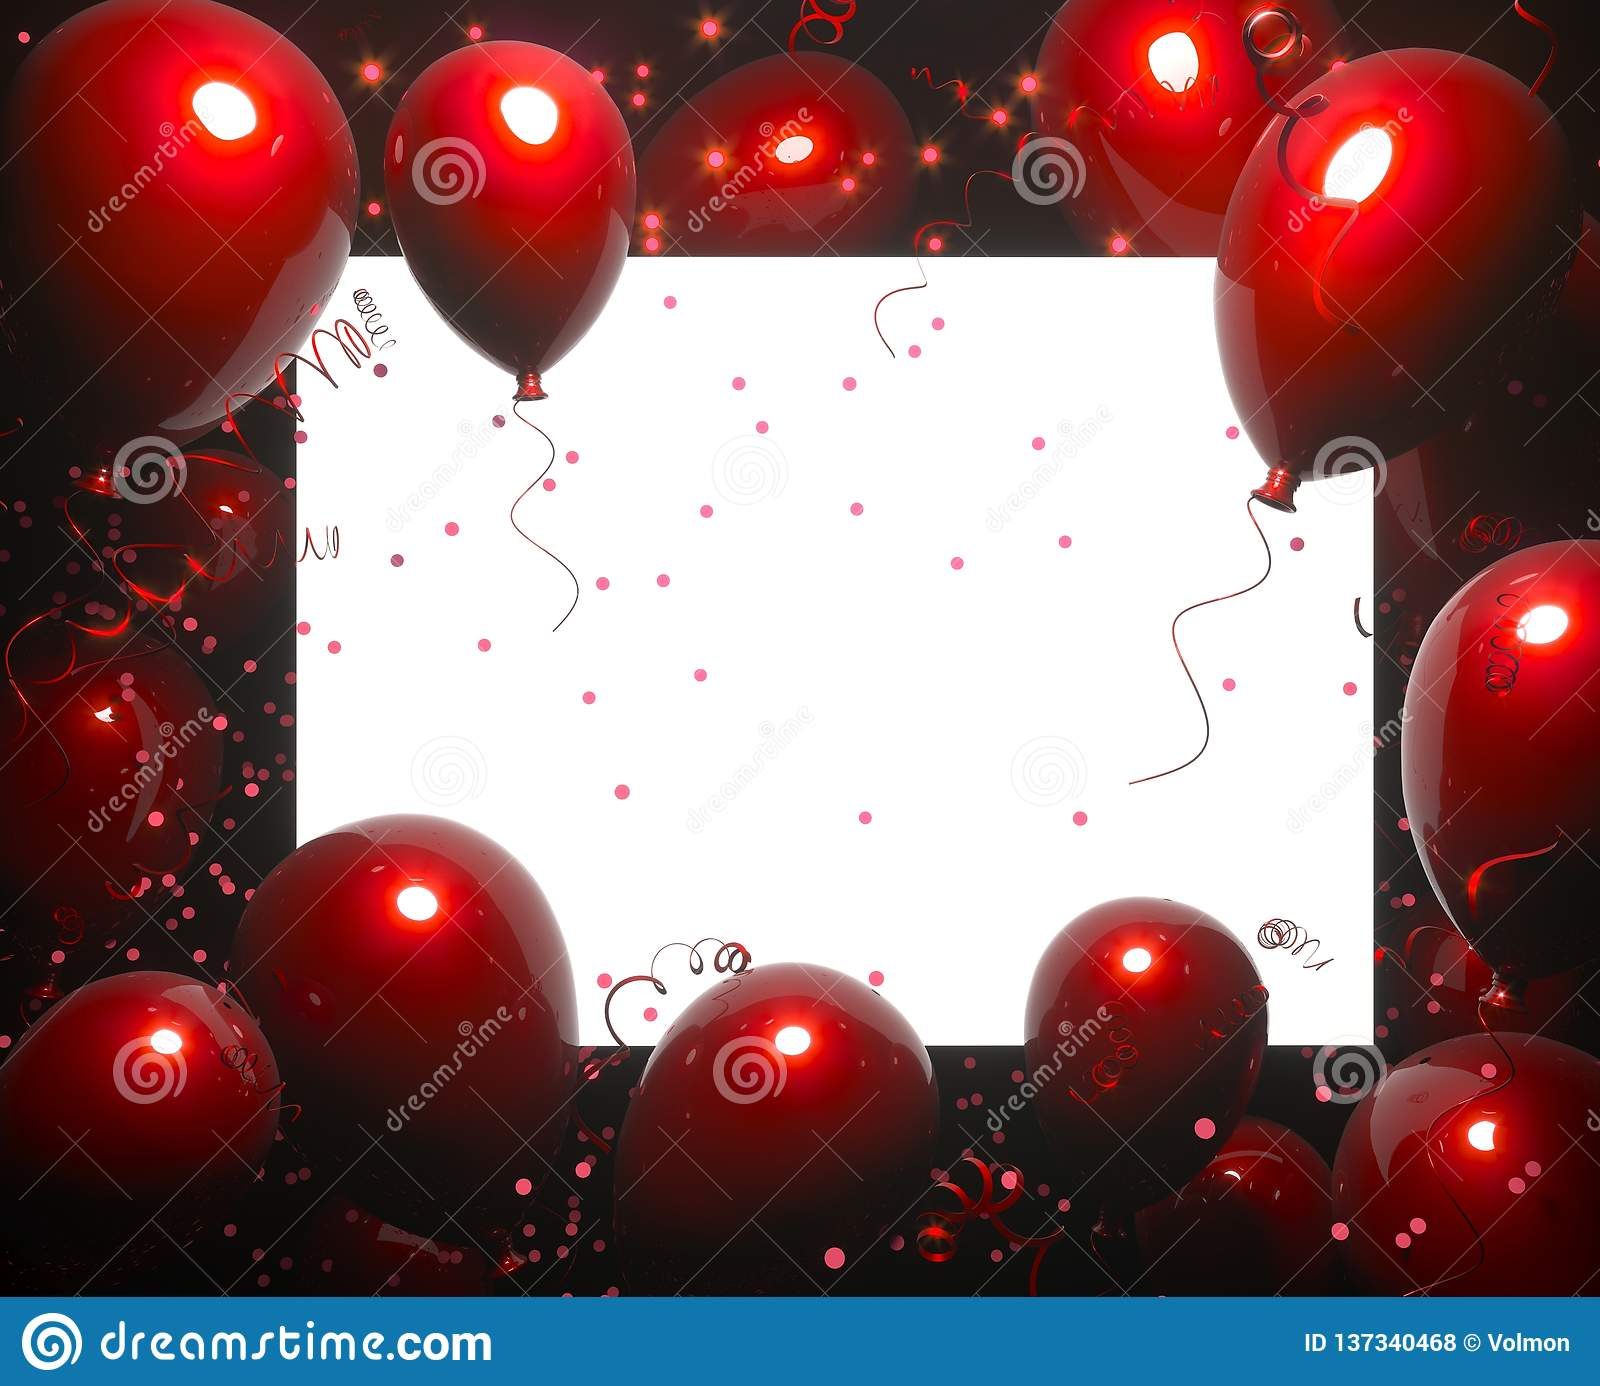 Party Banner With Red Balloons On Black Background And Place For Text Happy Birthday Cards Design Festive Or Present Stock Illustration Illustration Of Pearl Composition 137340468